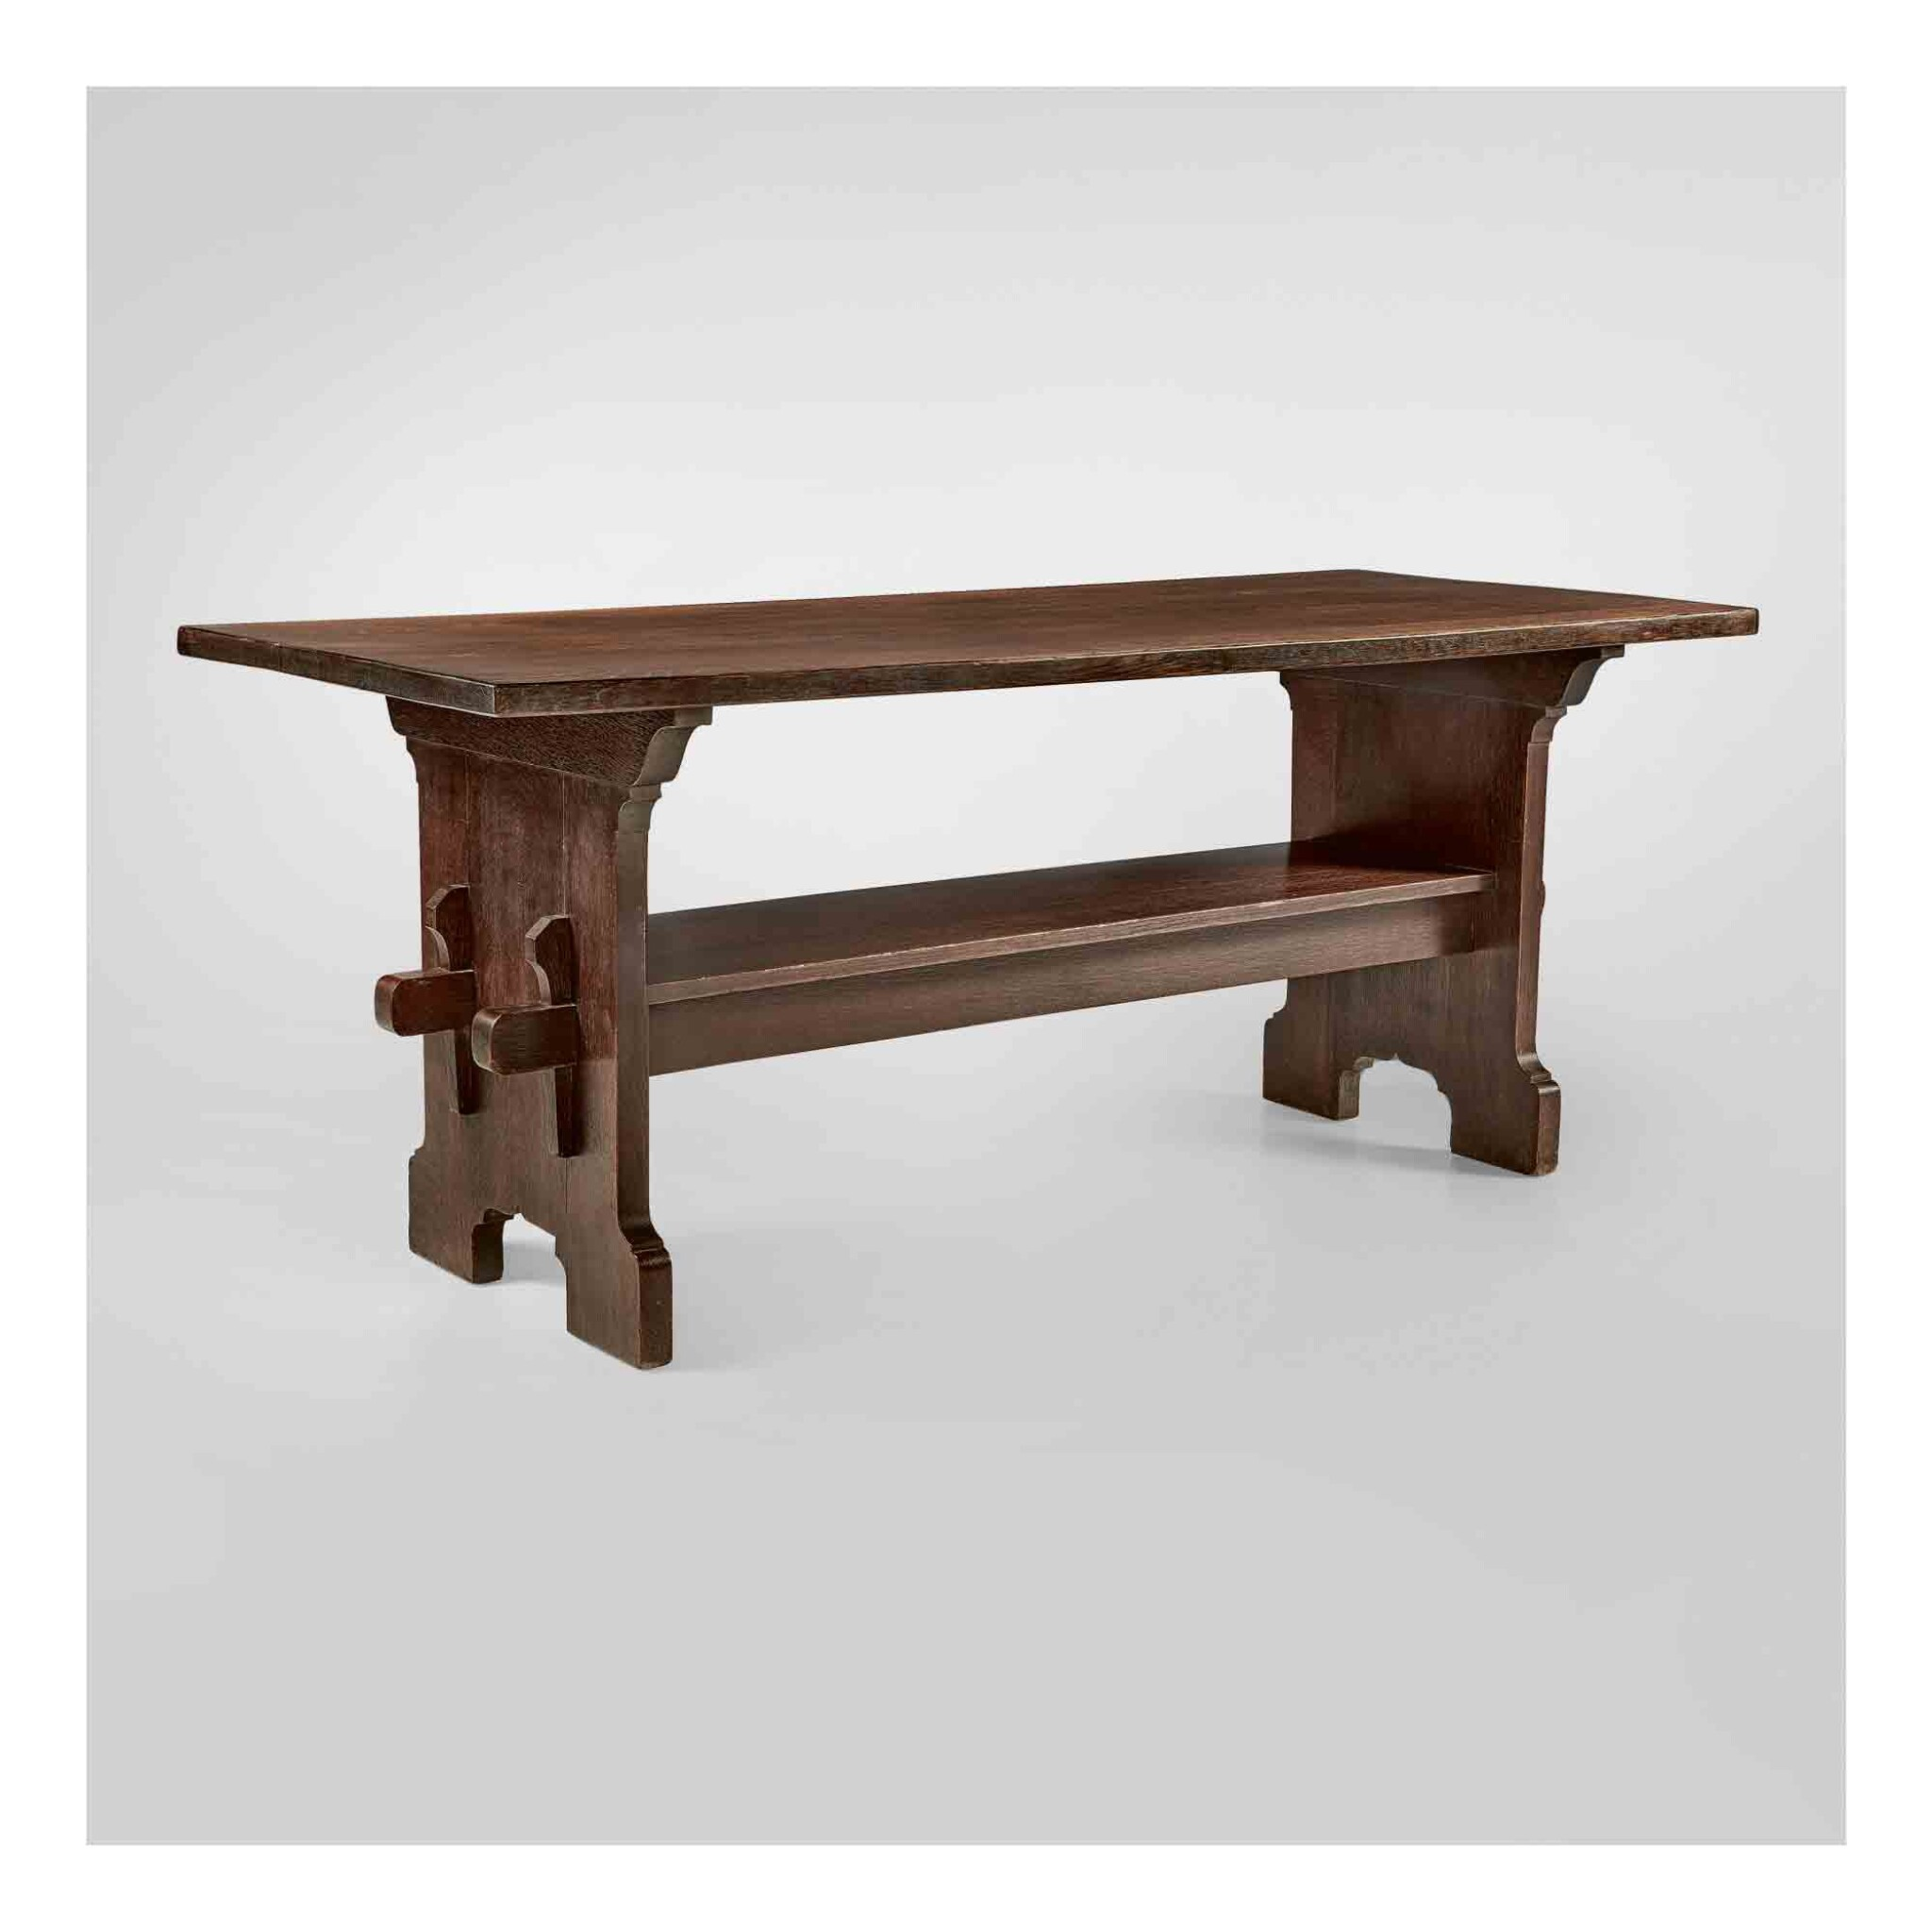 View 1 of Lot 322. Bungalow Trestle Table, Model No. 445.